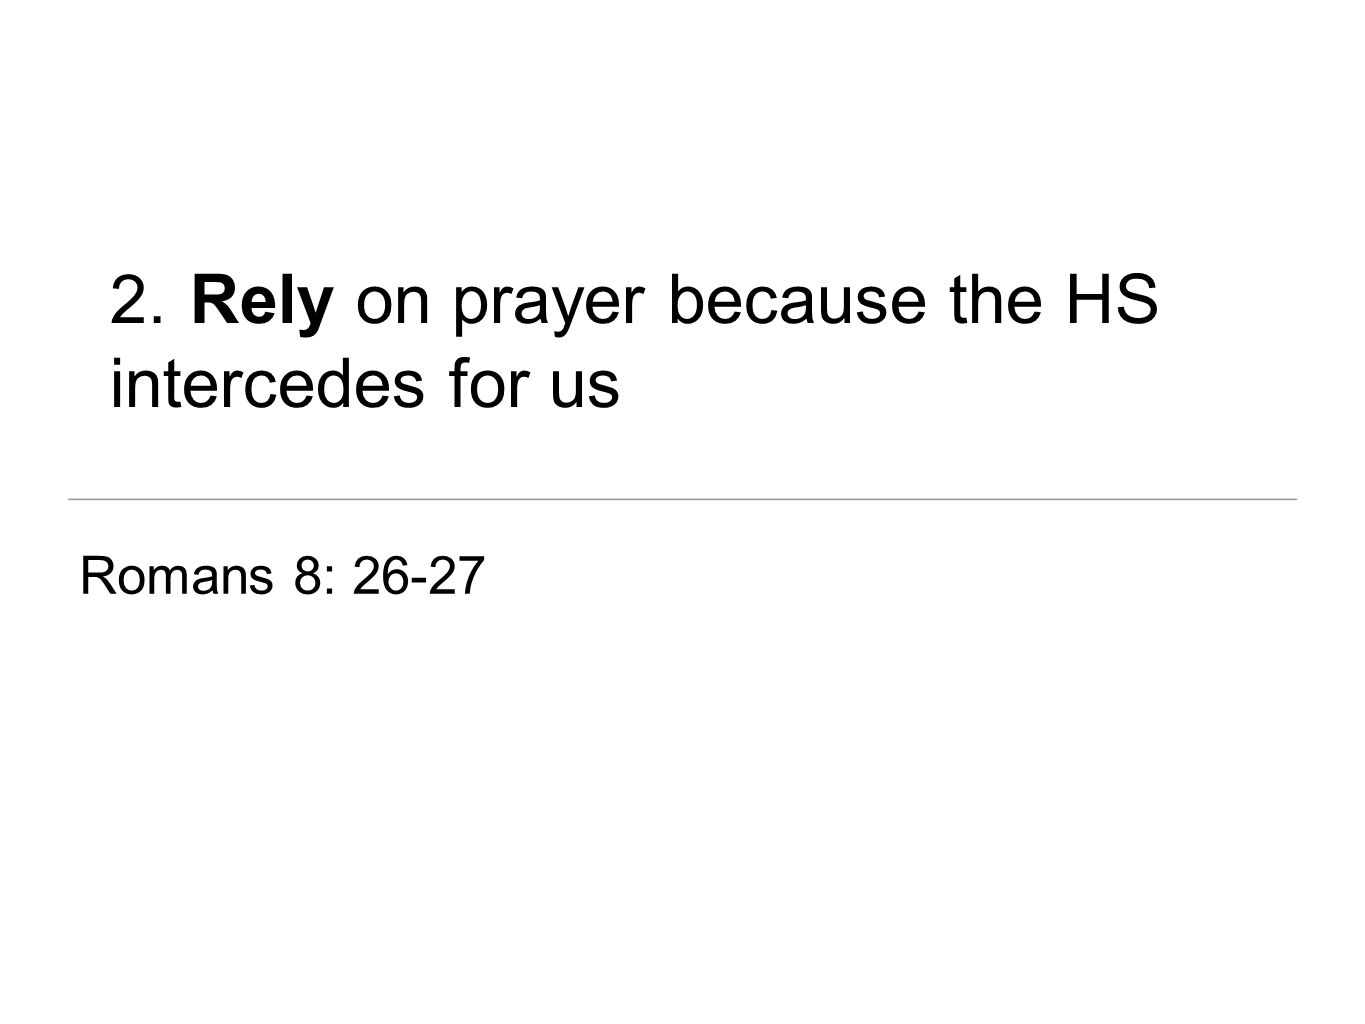 2. Rely on prayer because the HS intercedes for us